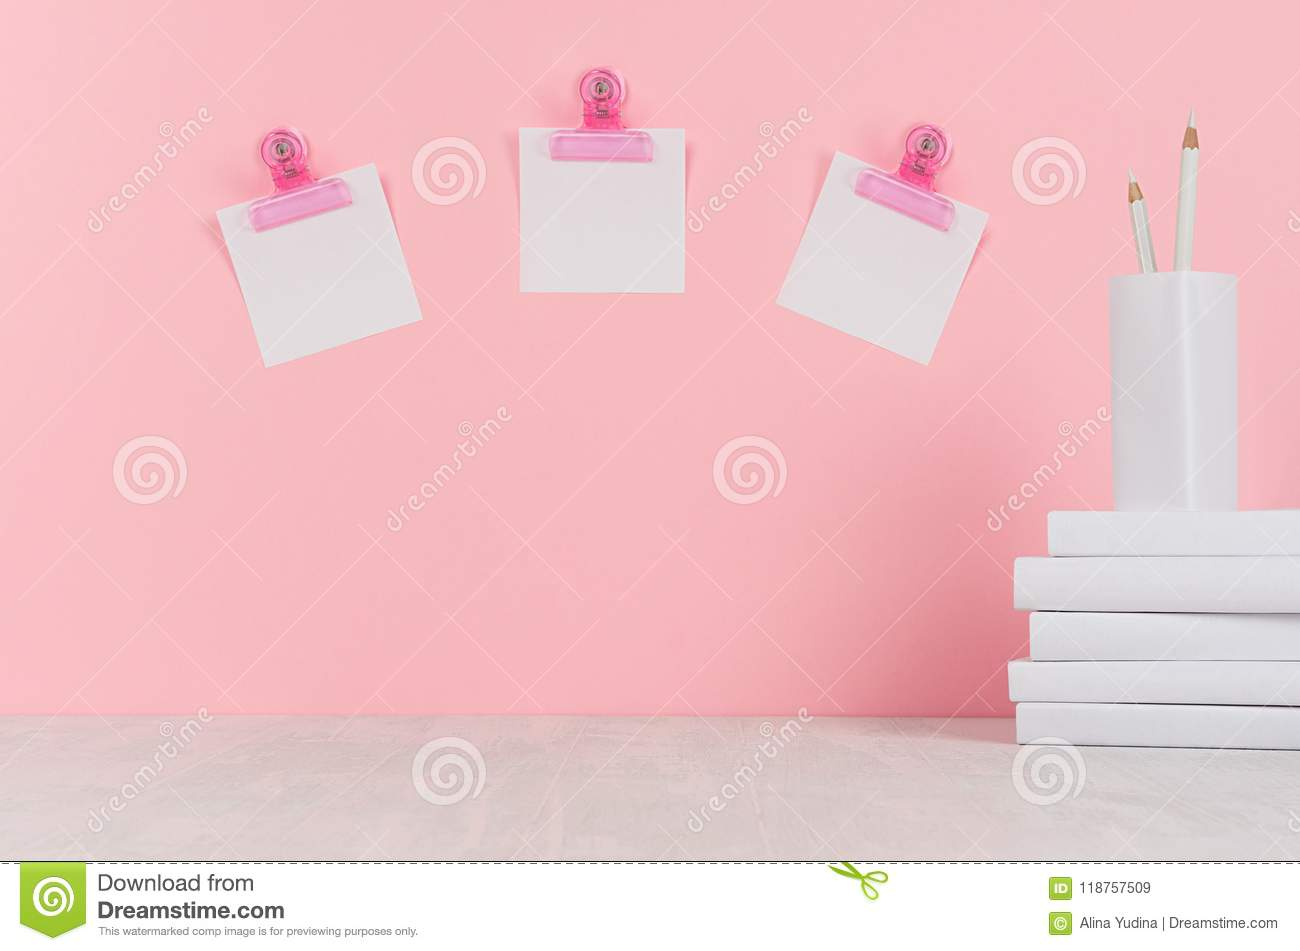 decorative office supplies. Download School Template - White Books, Stationery, Blank Stickers,  Decorative Balloons Origami On Decorative Office Supplies